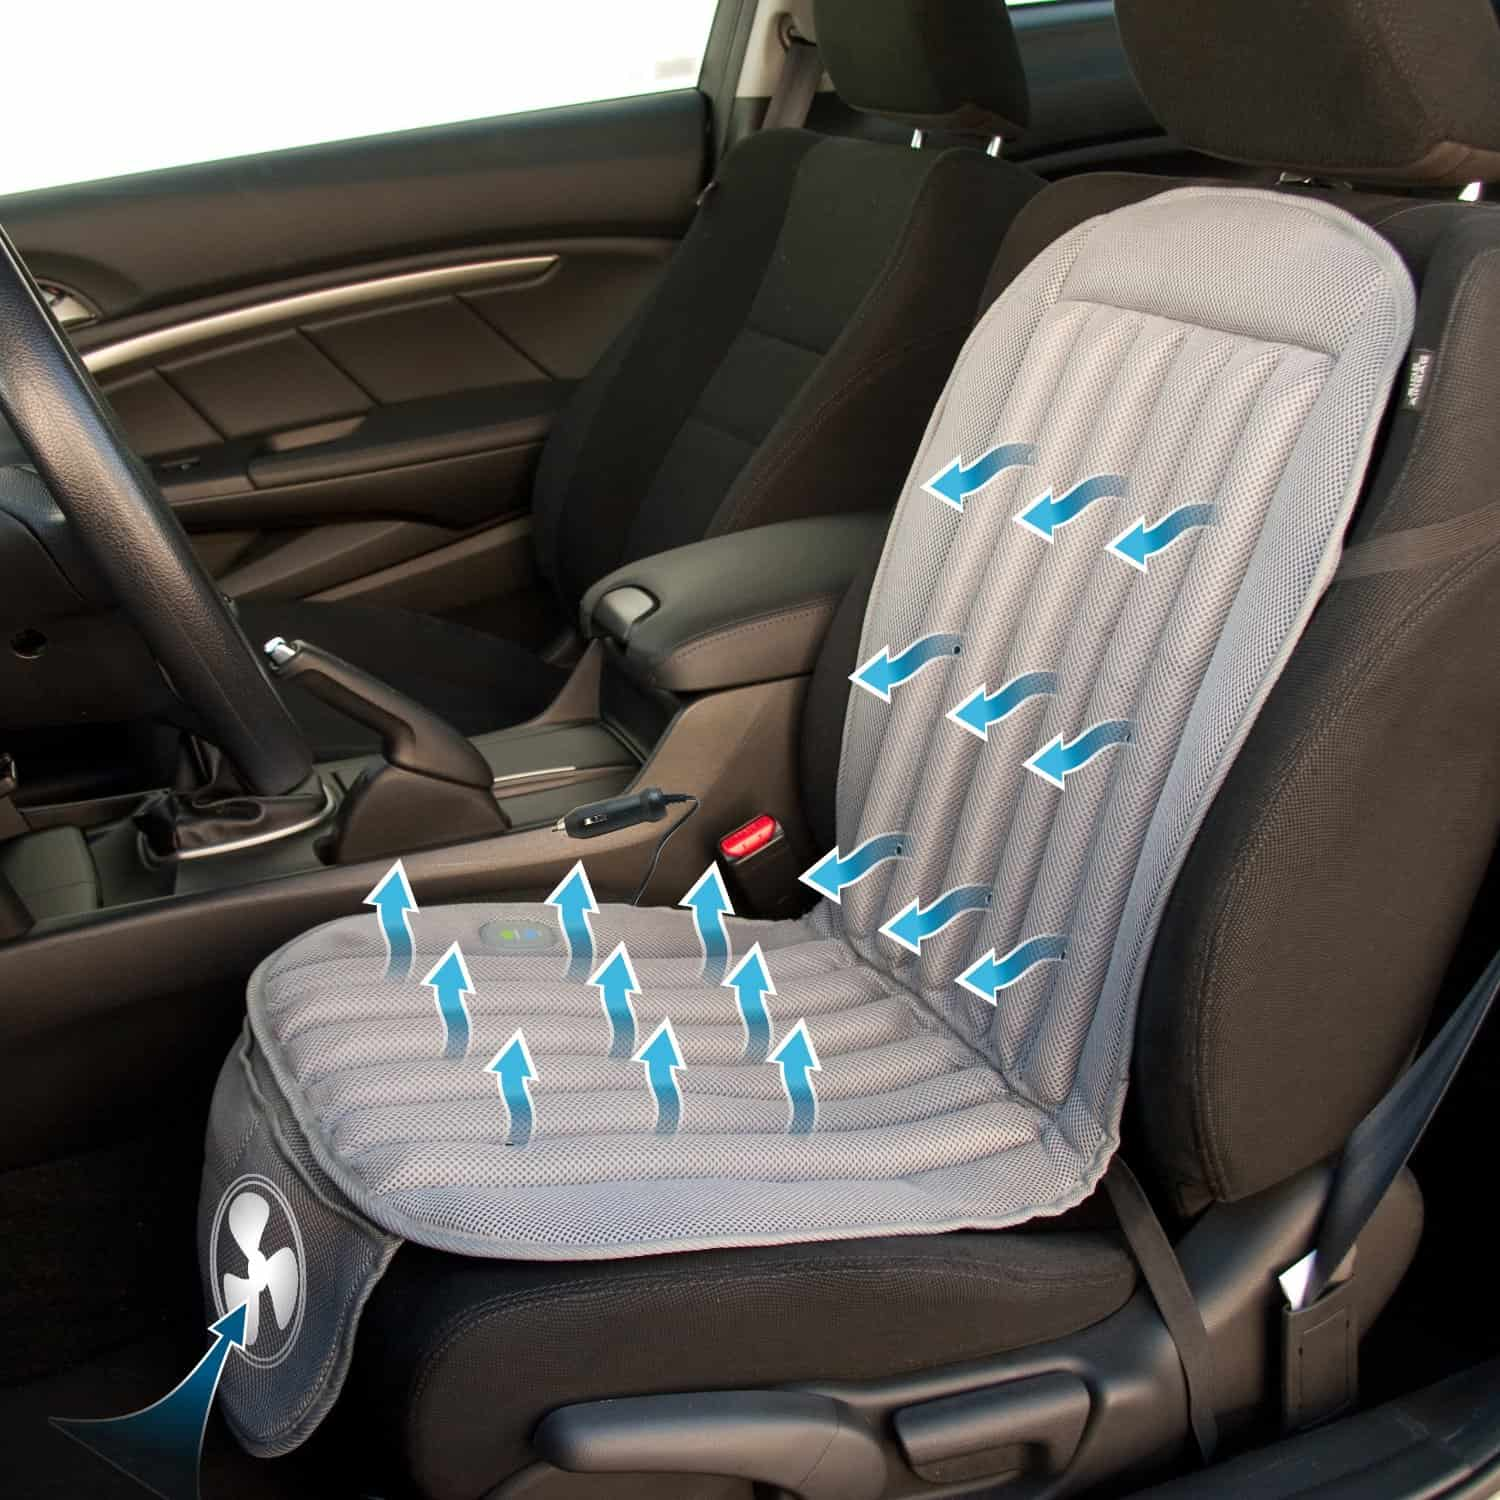 Car Seat Covers That Keep You Cool